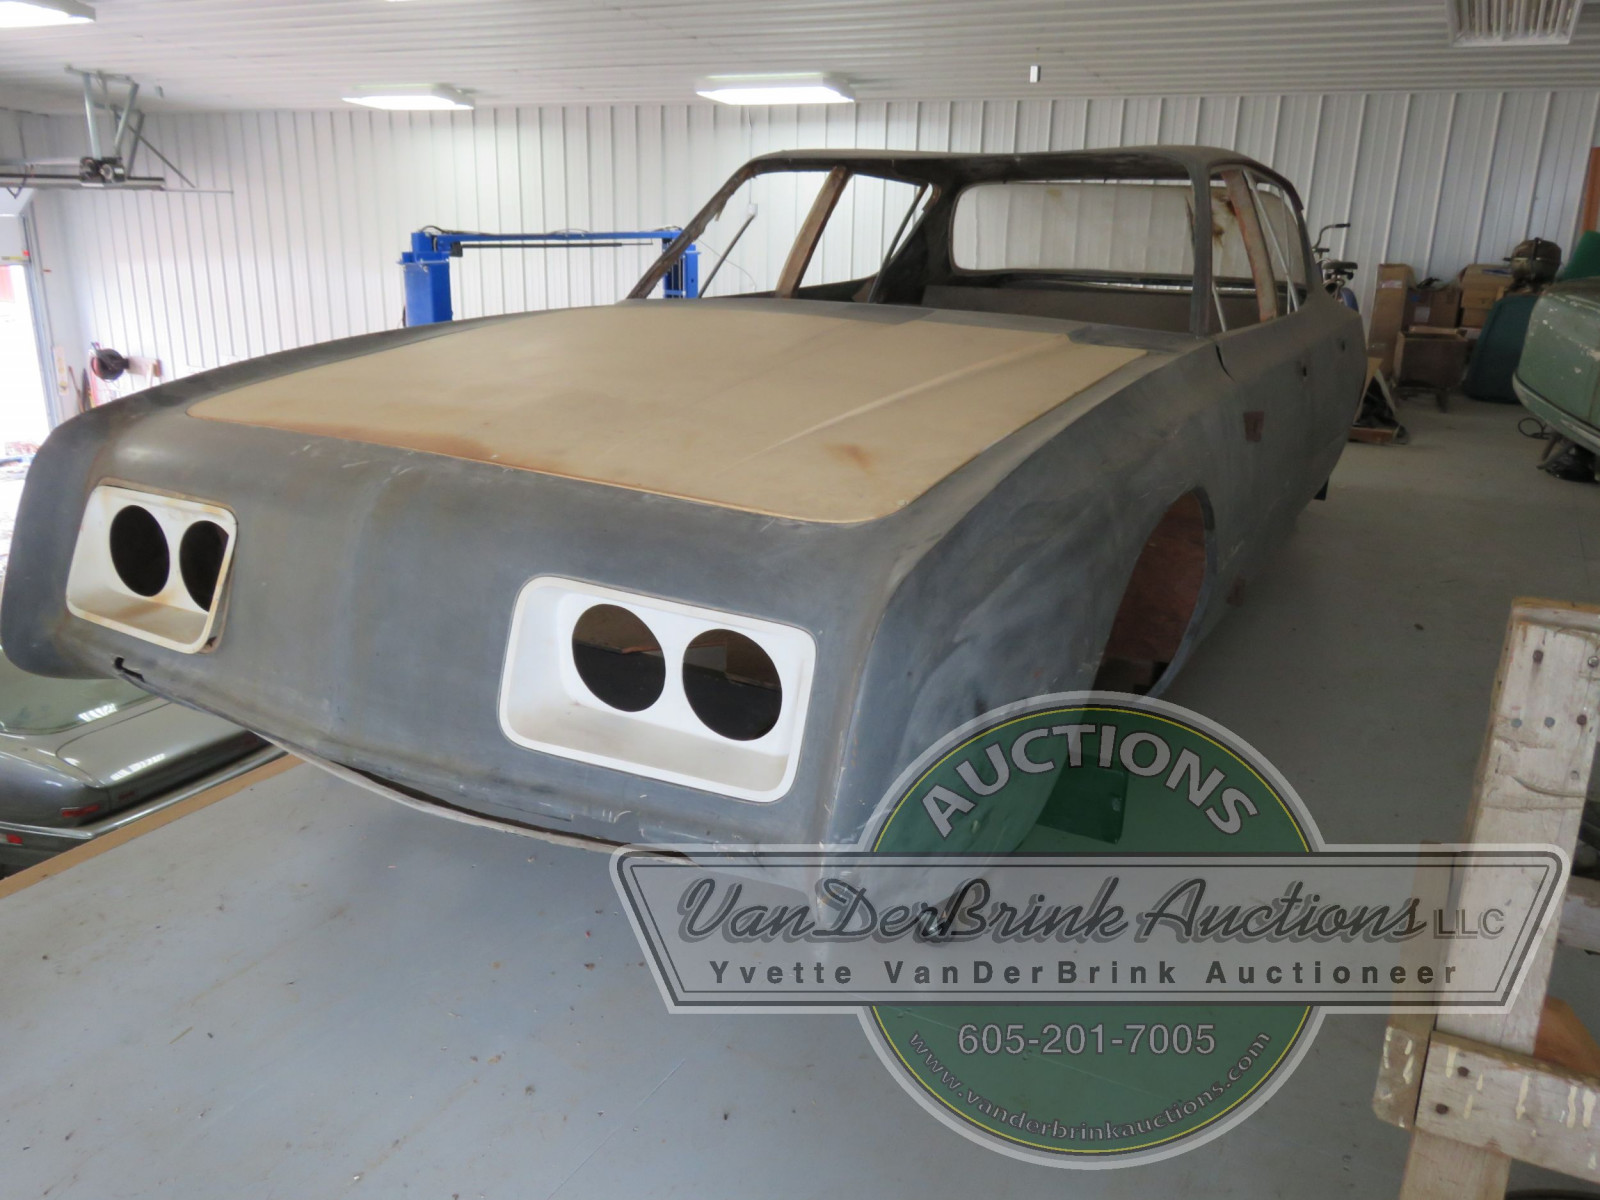 Rare Studebaker Avanti Prototype 4dr Engineering Body - Image 4